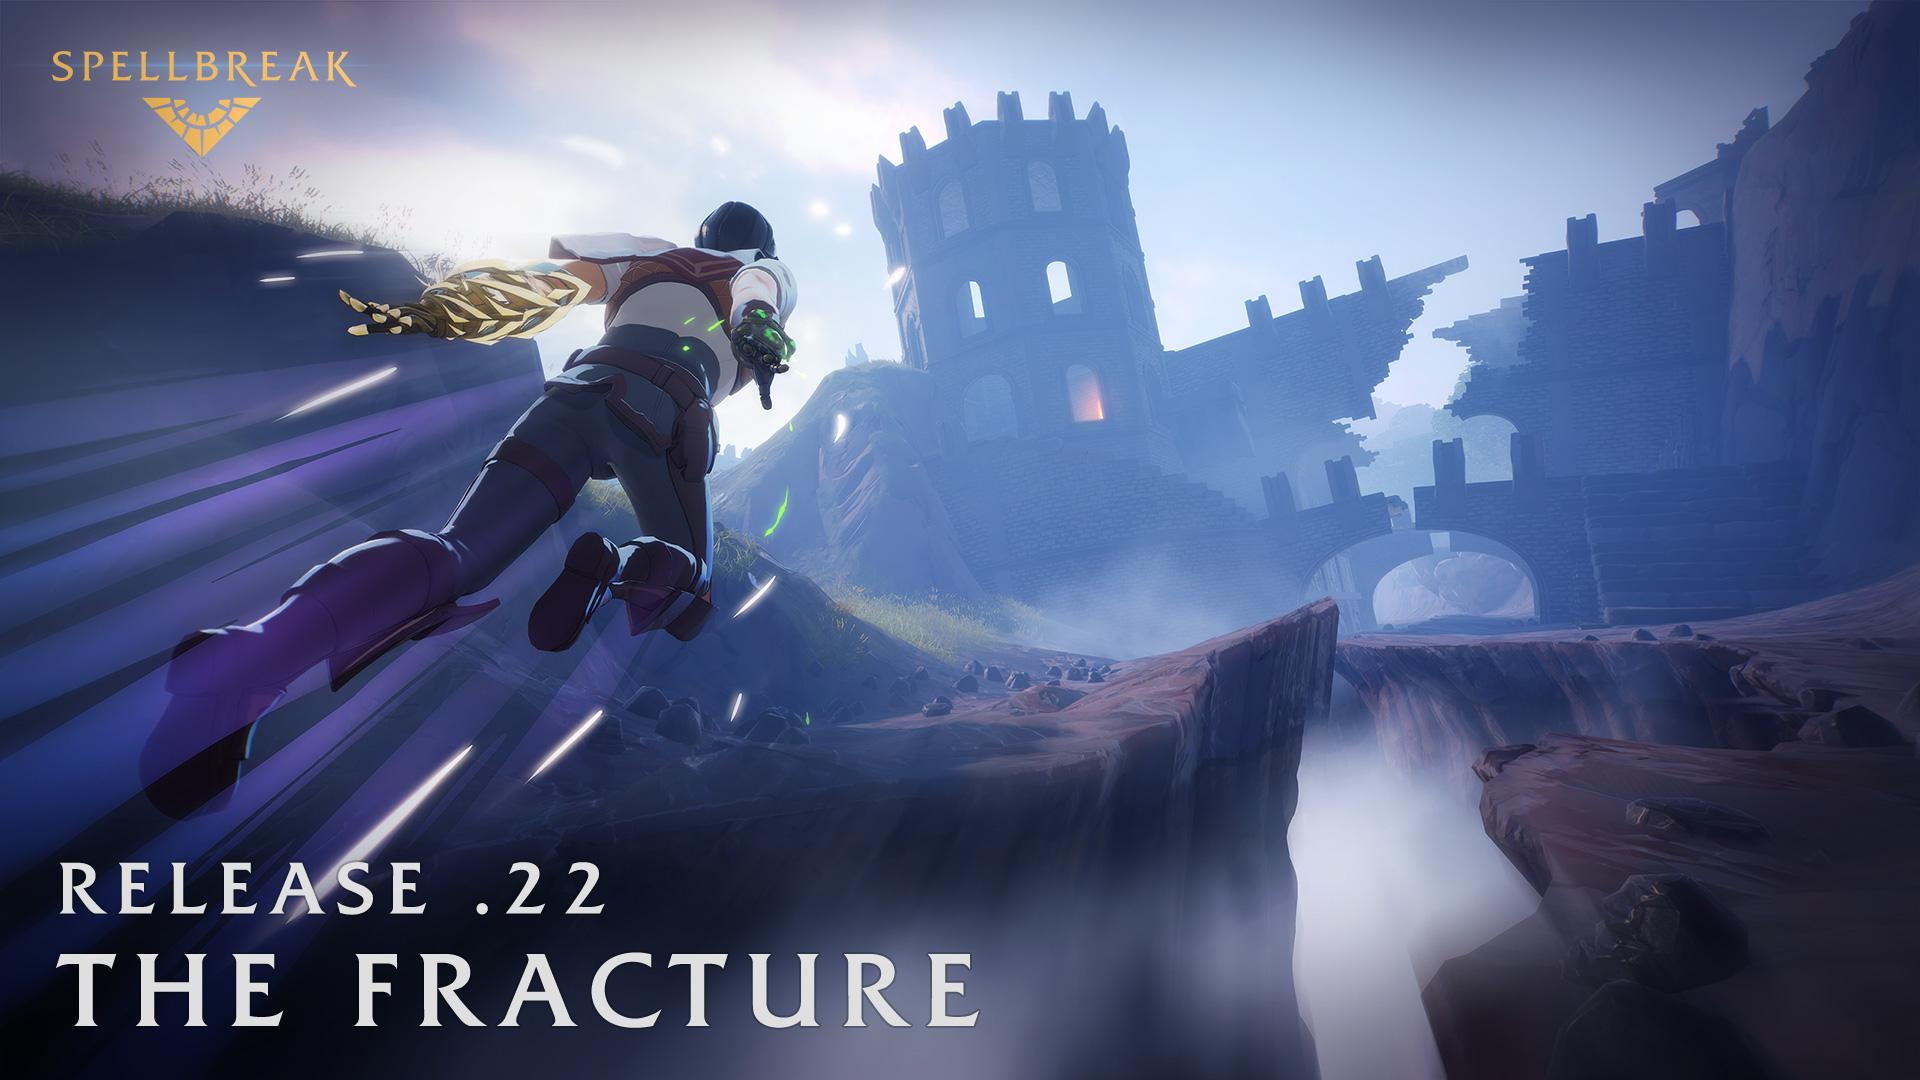 Spellbreak Fracture update